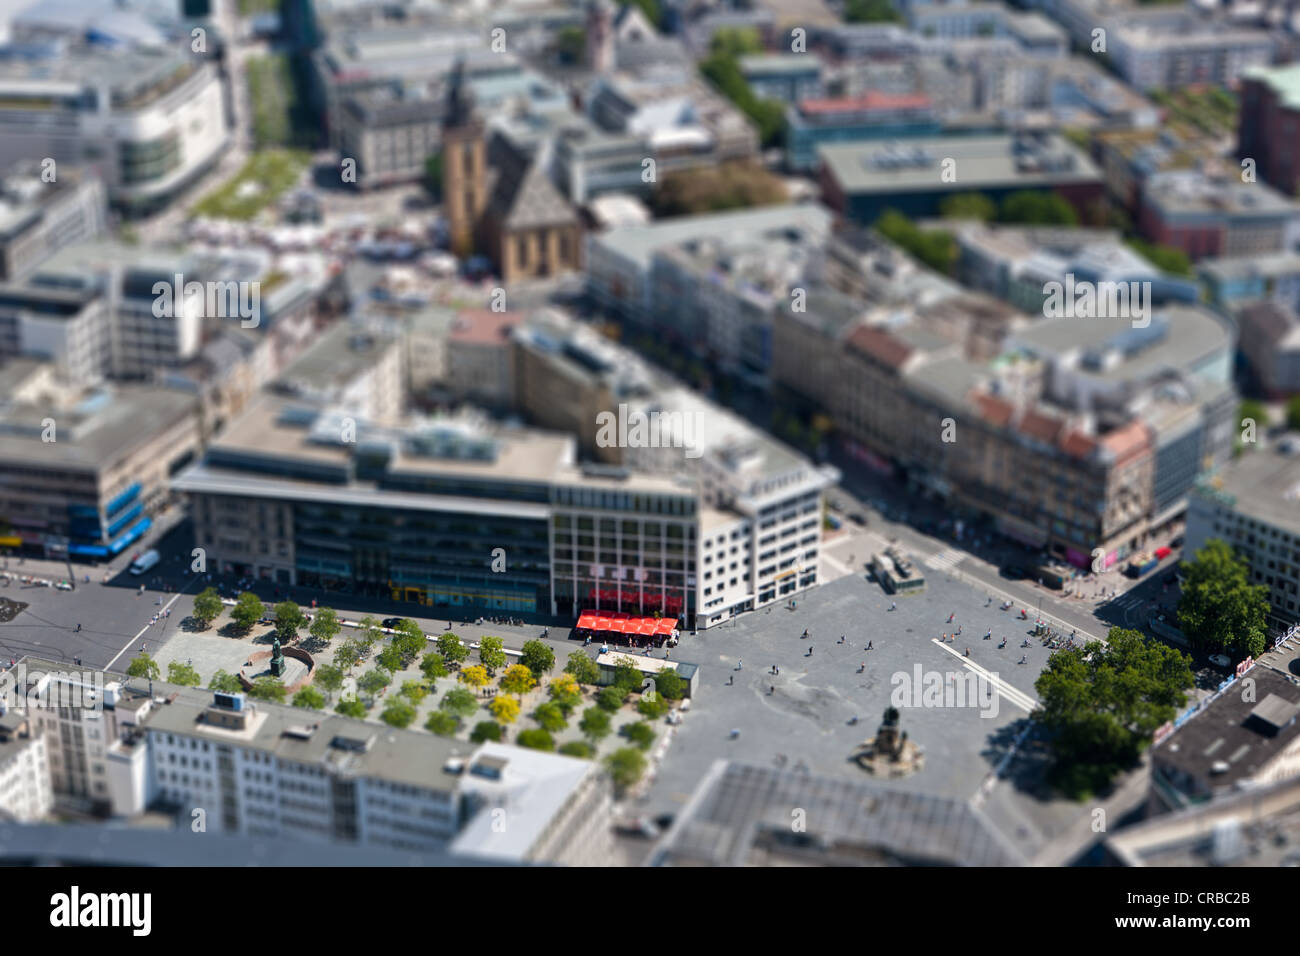 View over Rossmarkt and Goetheplatz squares, at the rear, the Zeil pedestrian zone, simulating a miniature scene - Stock Image